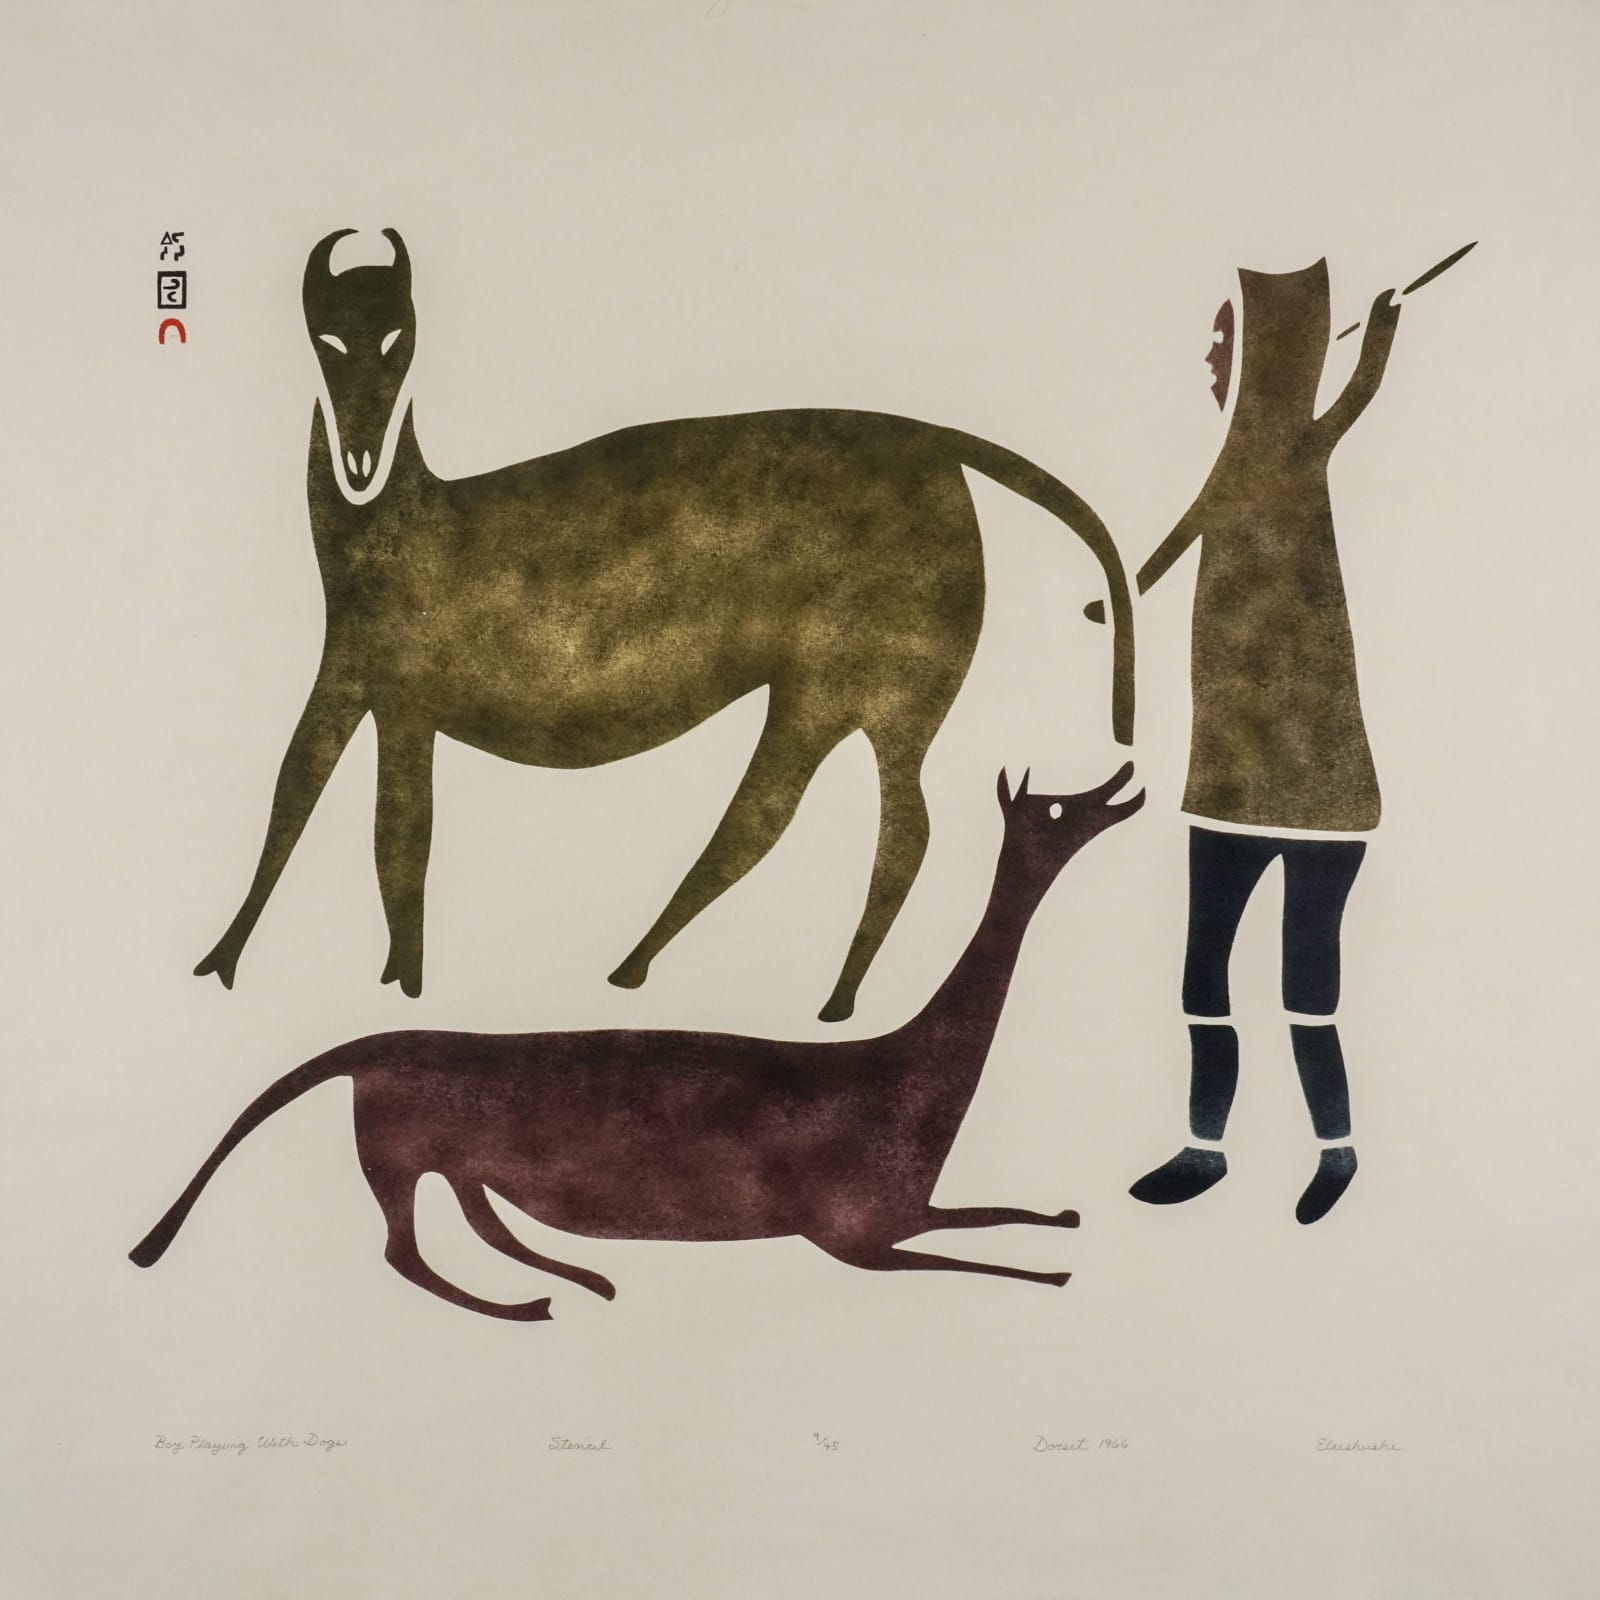 LOT 36  ELEESHUSHE PARR (1896-1975) KINNGAIT (CAPE DORSET) Boy Playing With Dogs, 1966 (2012)  stencil on Hamilton Andorra paper, 26 1/8 x 28 in (66.5 x 71 cm)  ESTIMATE: $700 - $1,000